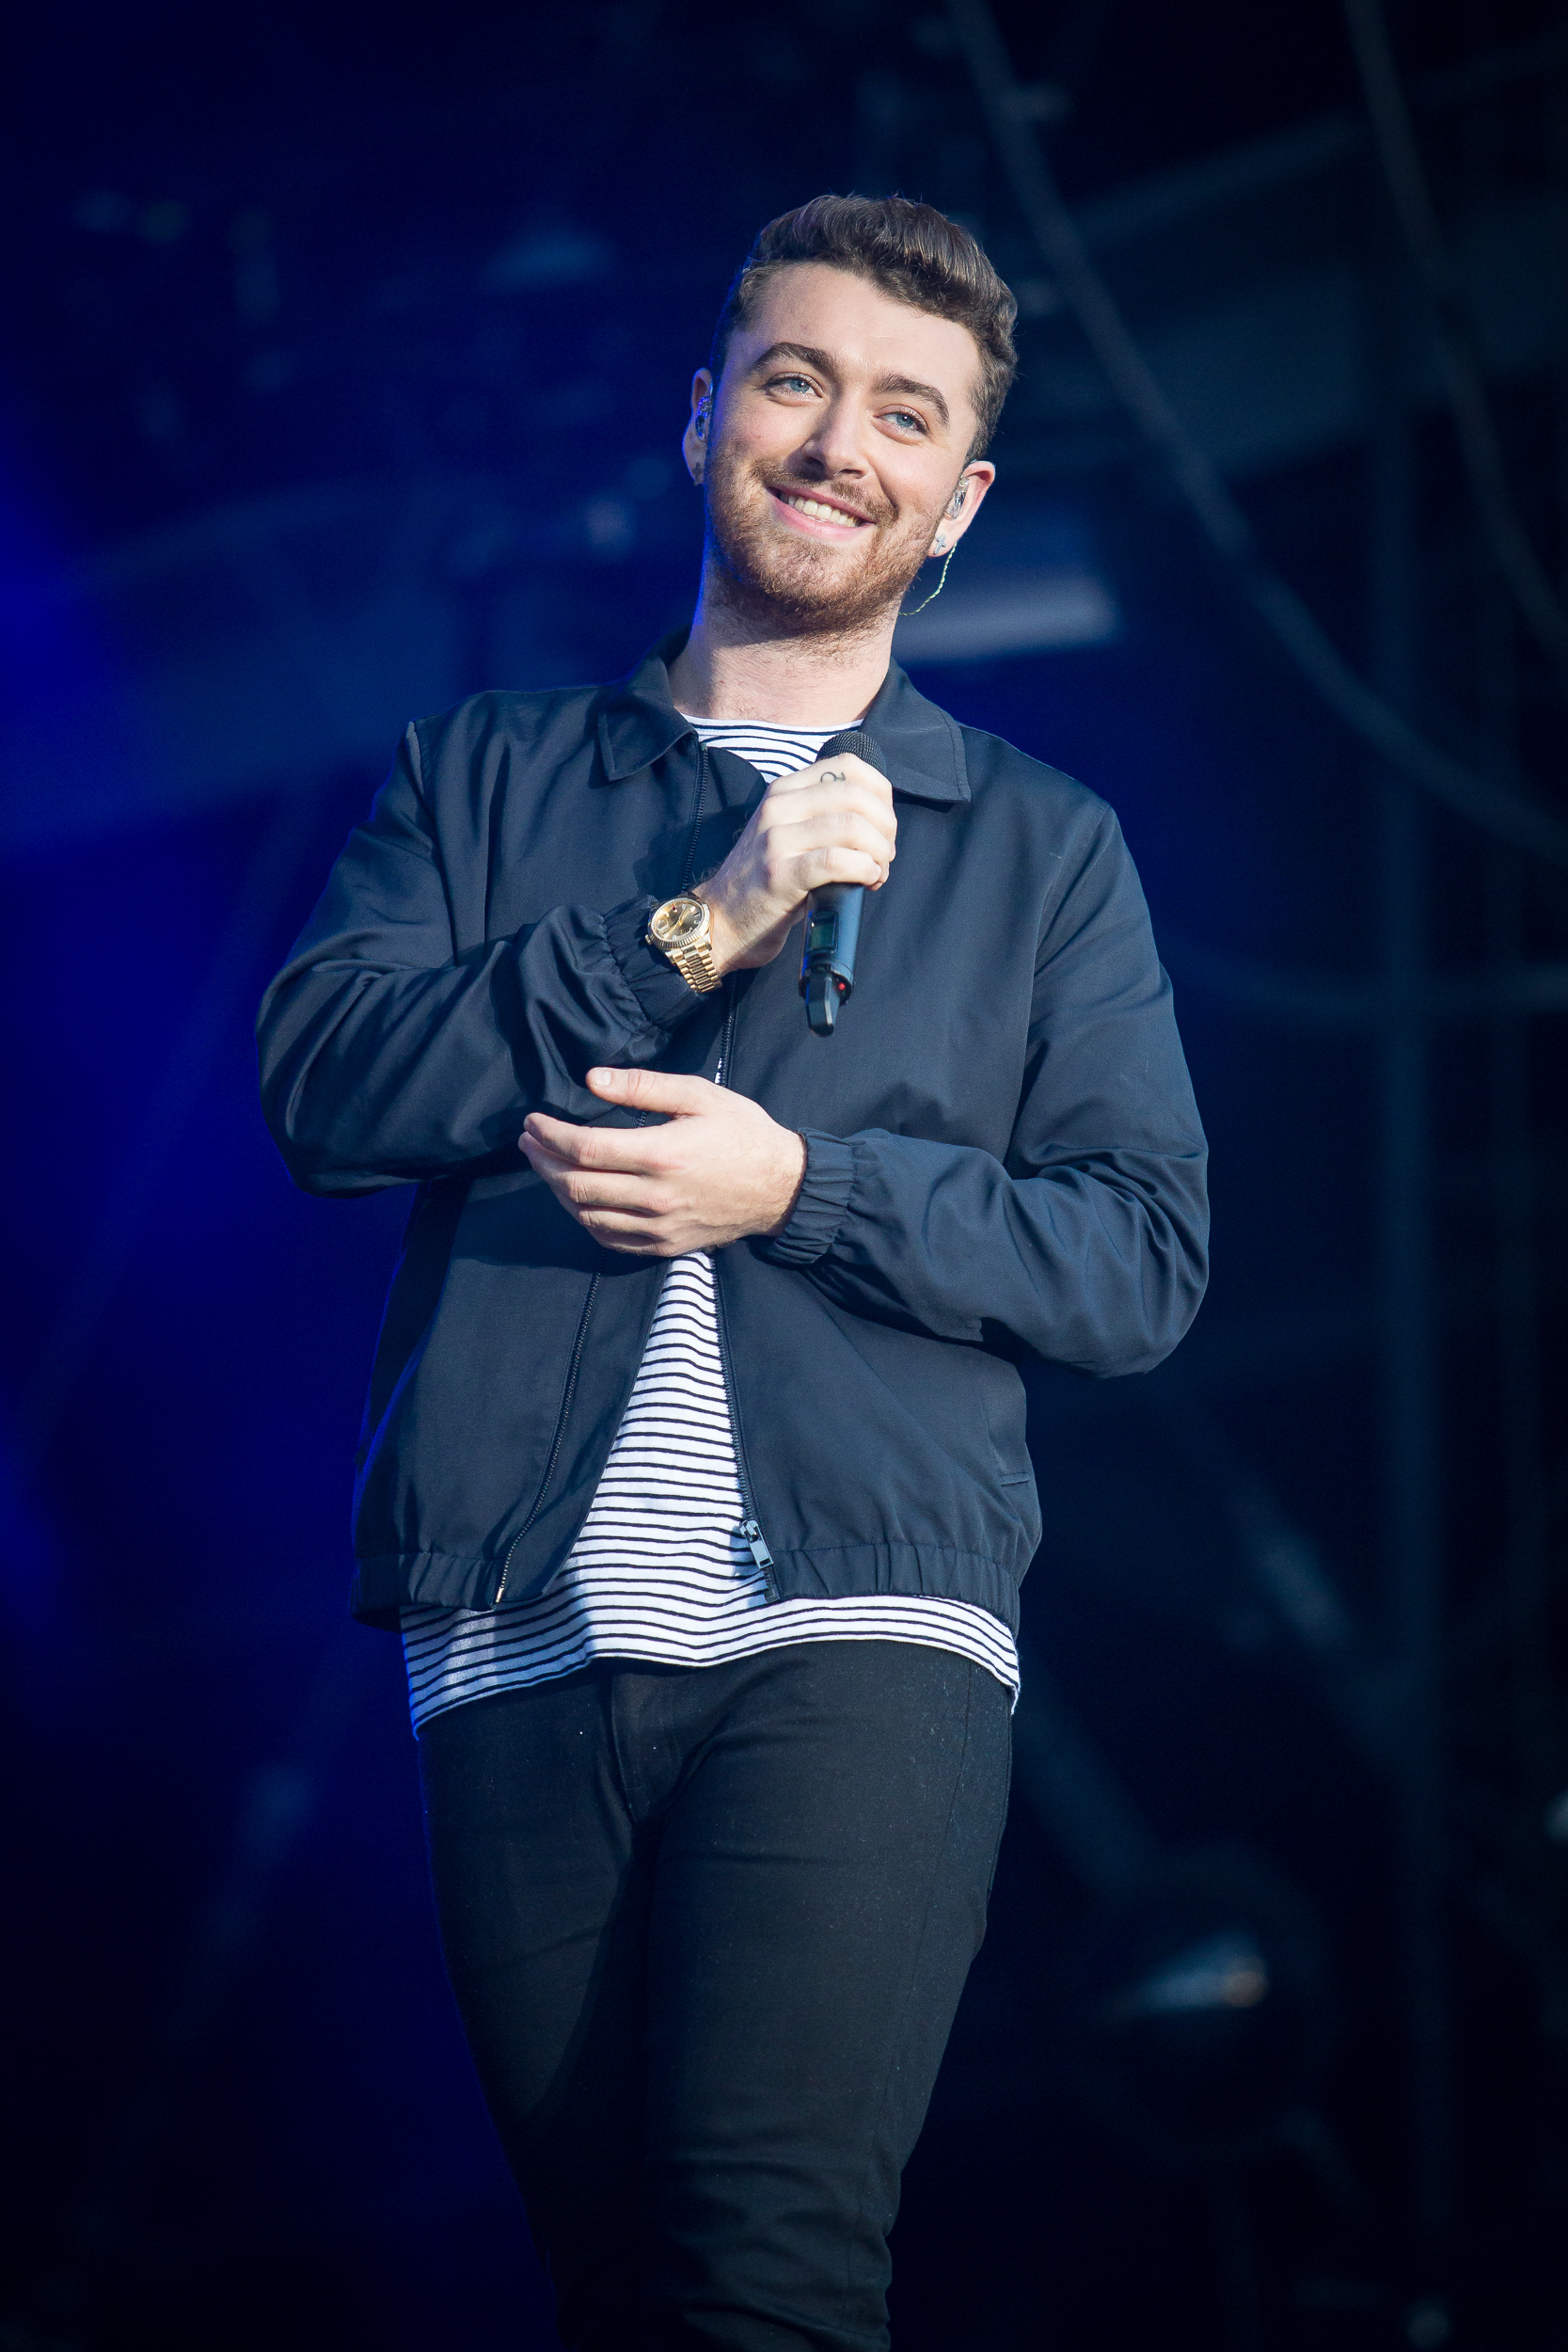 Sam Smith live at Lollapalooza Berlin 2015, Berlin.